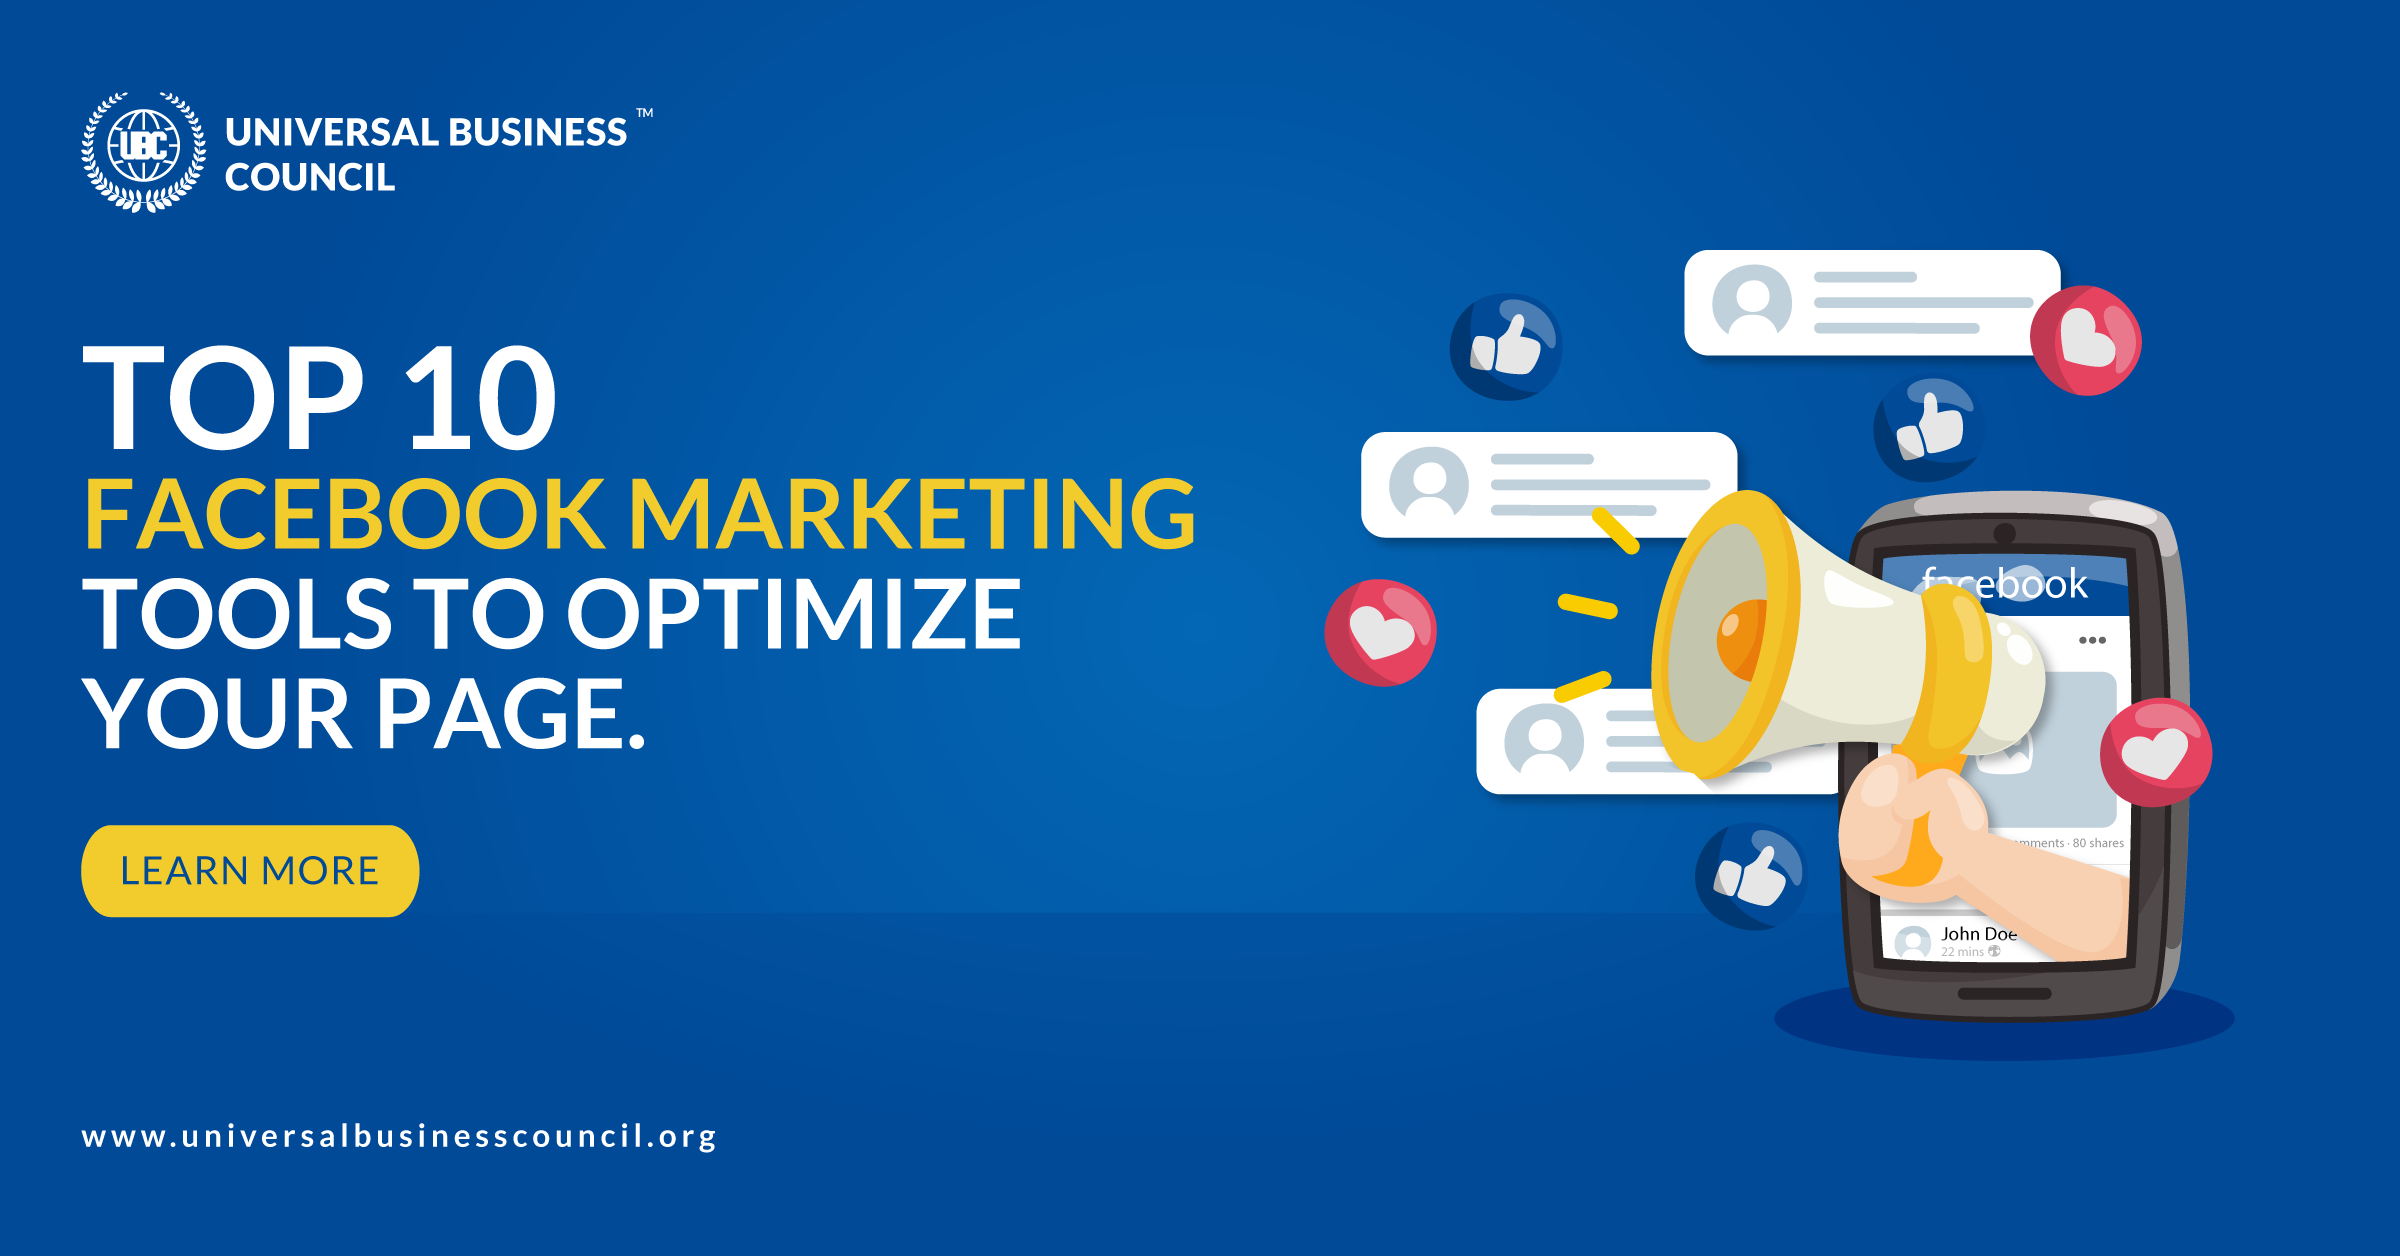 Top-10-Facebook-Marketing-Tools-To-Optimize-Your-Page